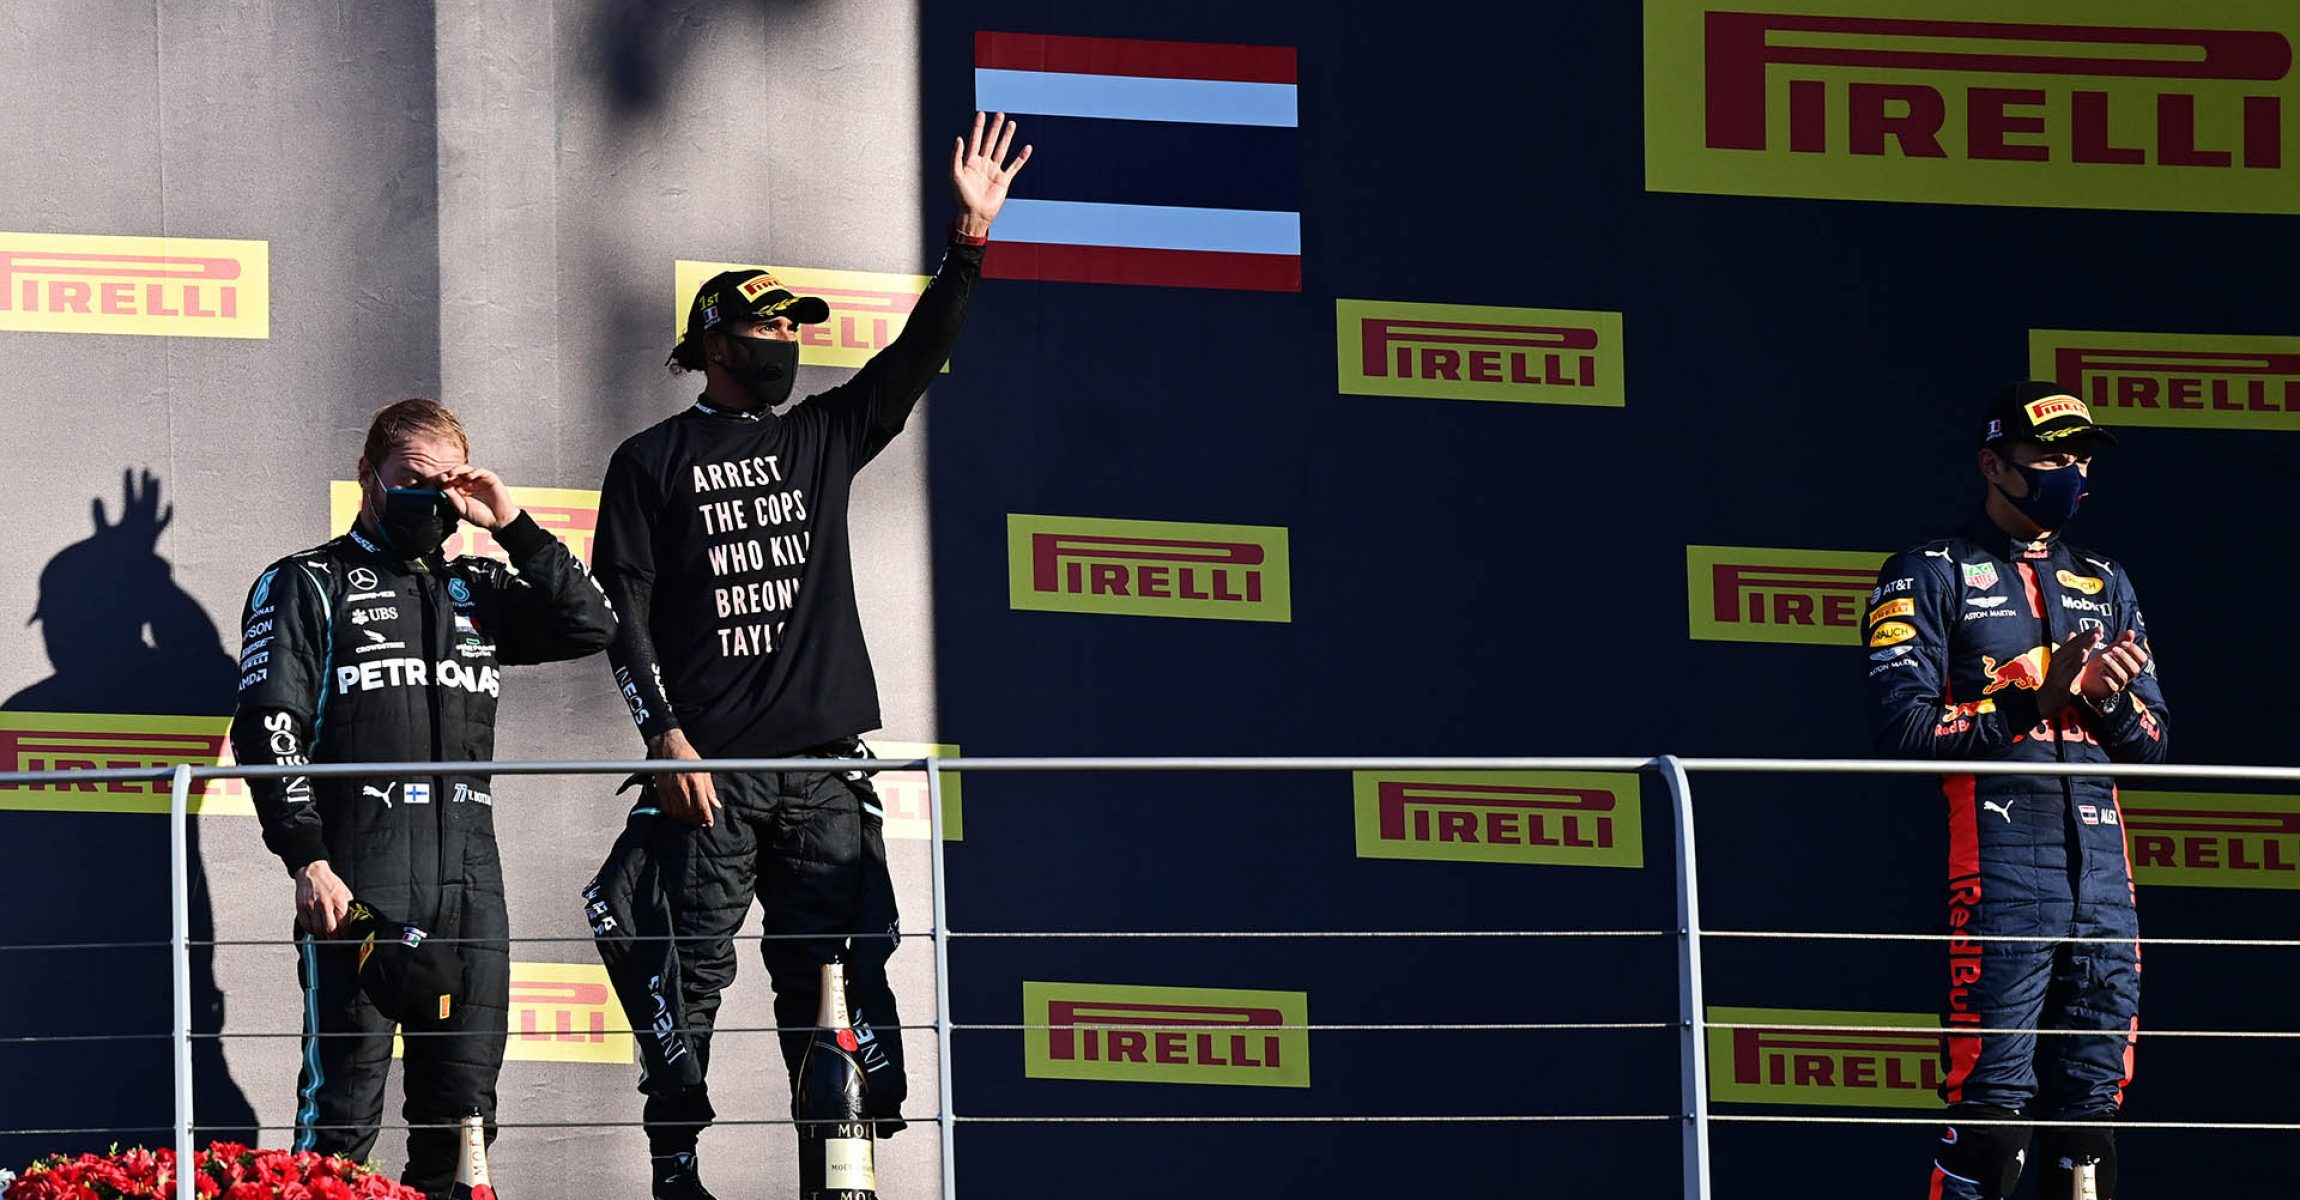 SCARPERIA, ITALY - SEPTEMBER 13: Race winner Lewis Hamilton of Great Britain and Mercedes GP, second placed Valtteri Bottas of Finland and Mercedes GP and third placed Alexander Albon of Thailand and Red Bull Racing celebrate on the podium during the F1 Grand Prix of Tuscany at Mugello Circuit on September 13, 2020 in Scarperia, Italy. (Photo by Miguel Medina - Pool/Getty Images)